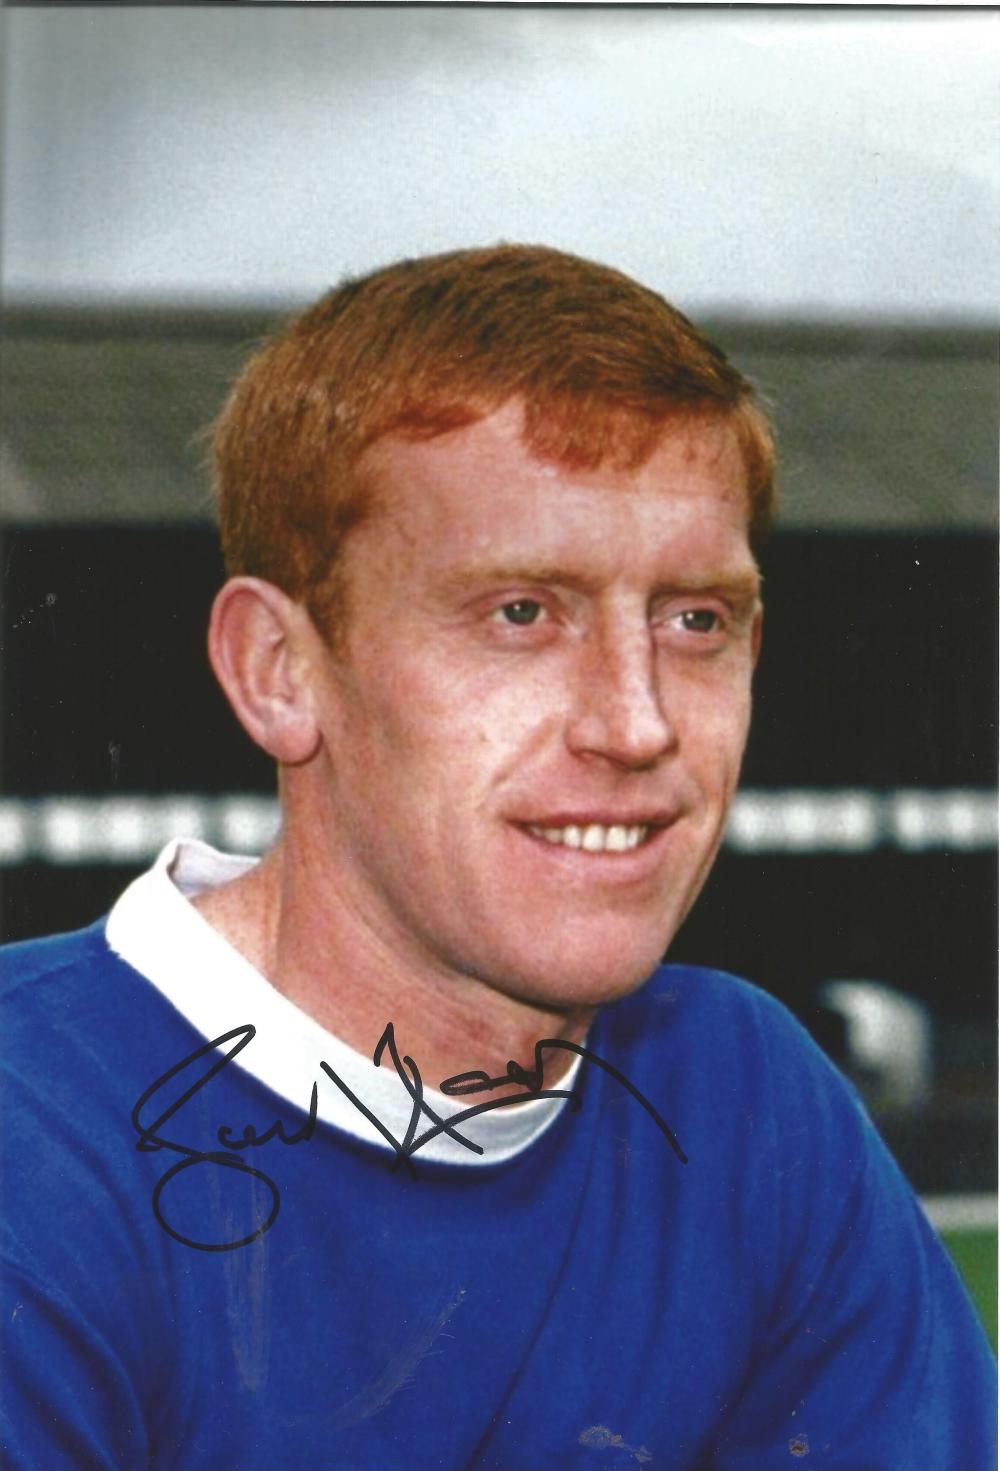 Football Tony Kay signed 12x8 colour photo pictured during his playing days with Everton. Good